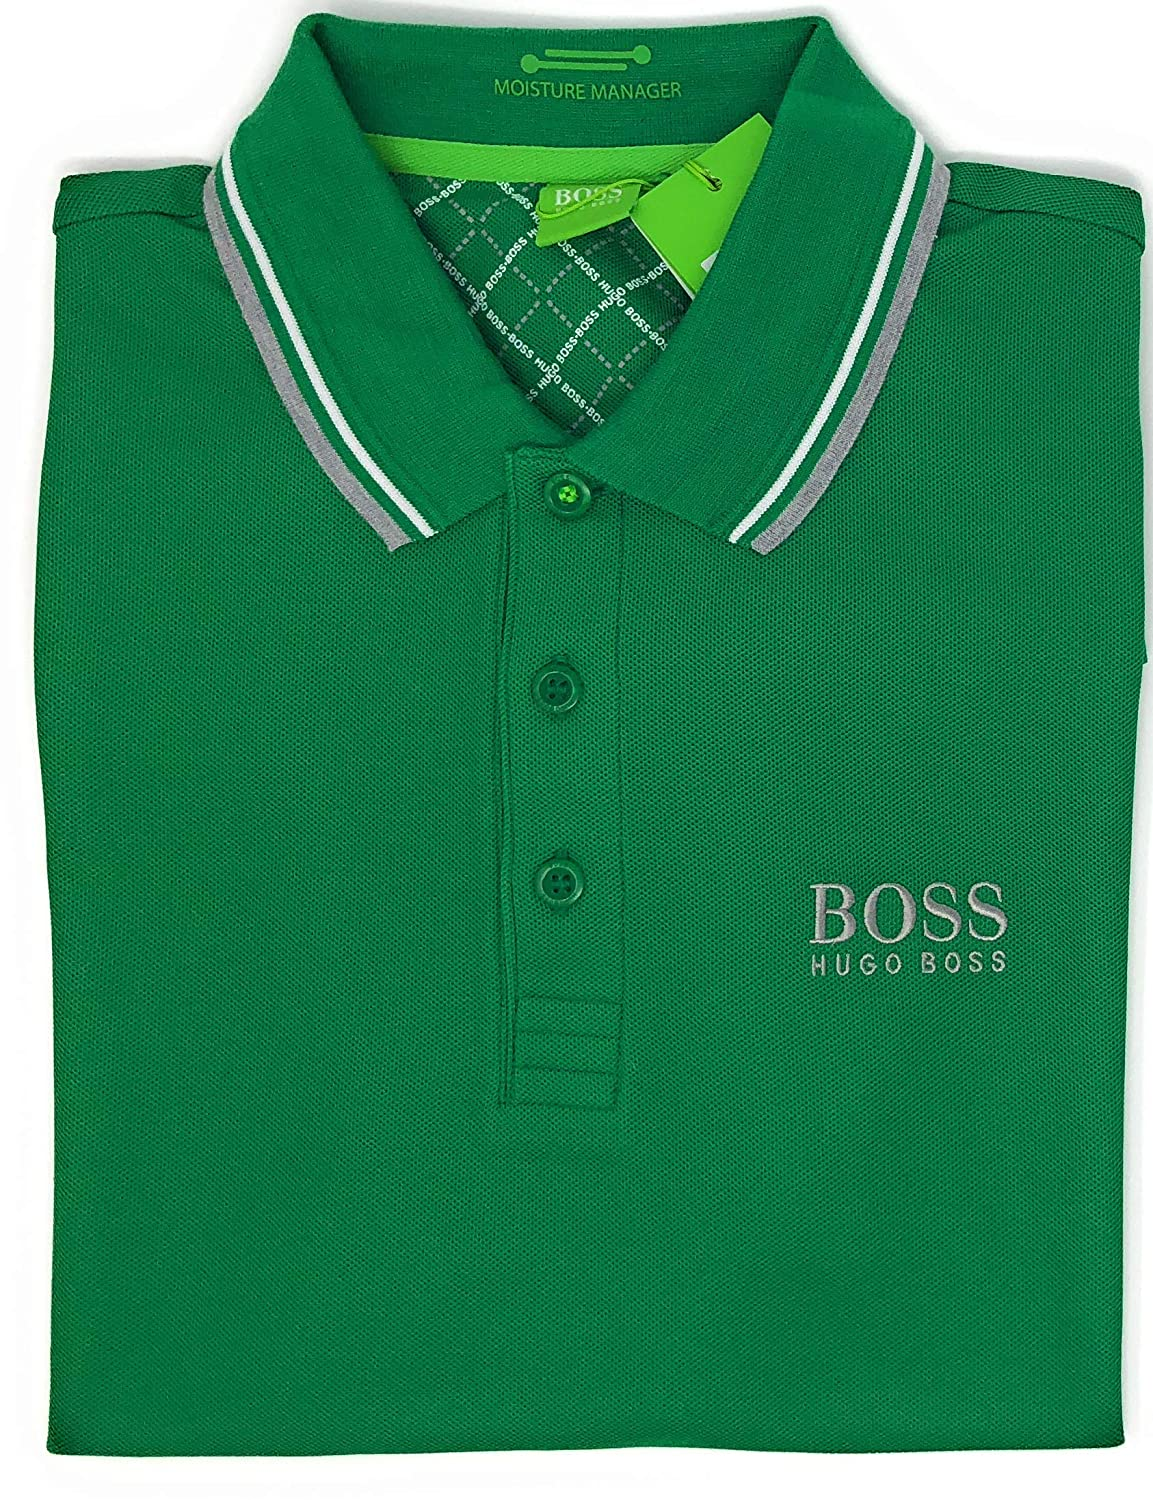 61dcd198b Hugo Boss Polo Shirts Sale – EDGE Engineering and Consulting Limited